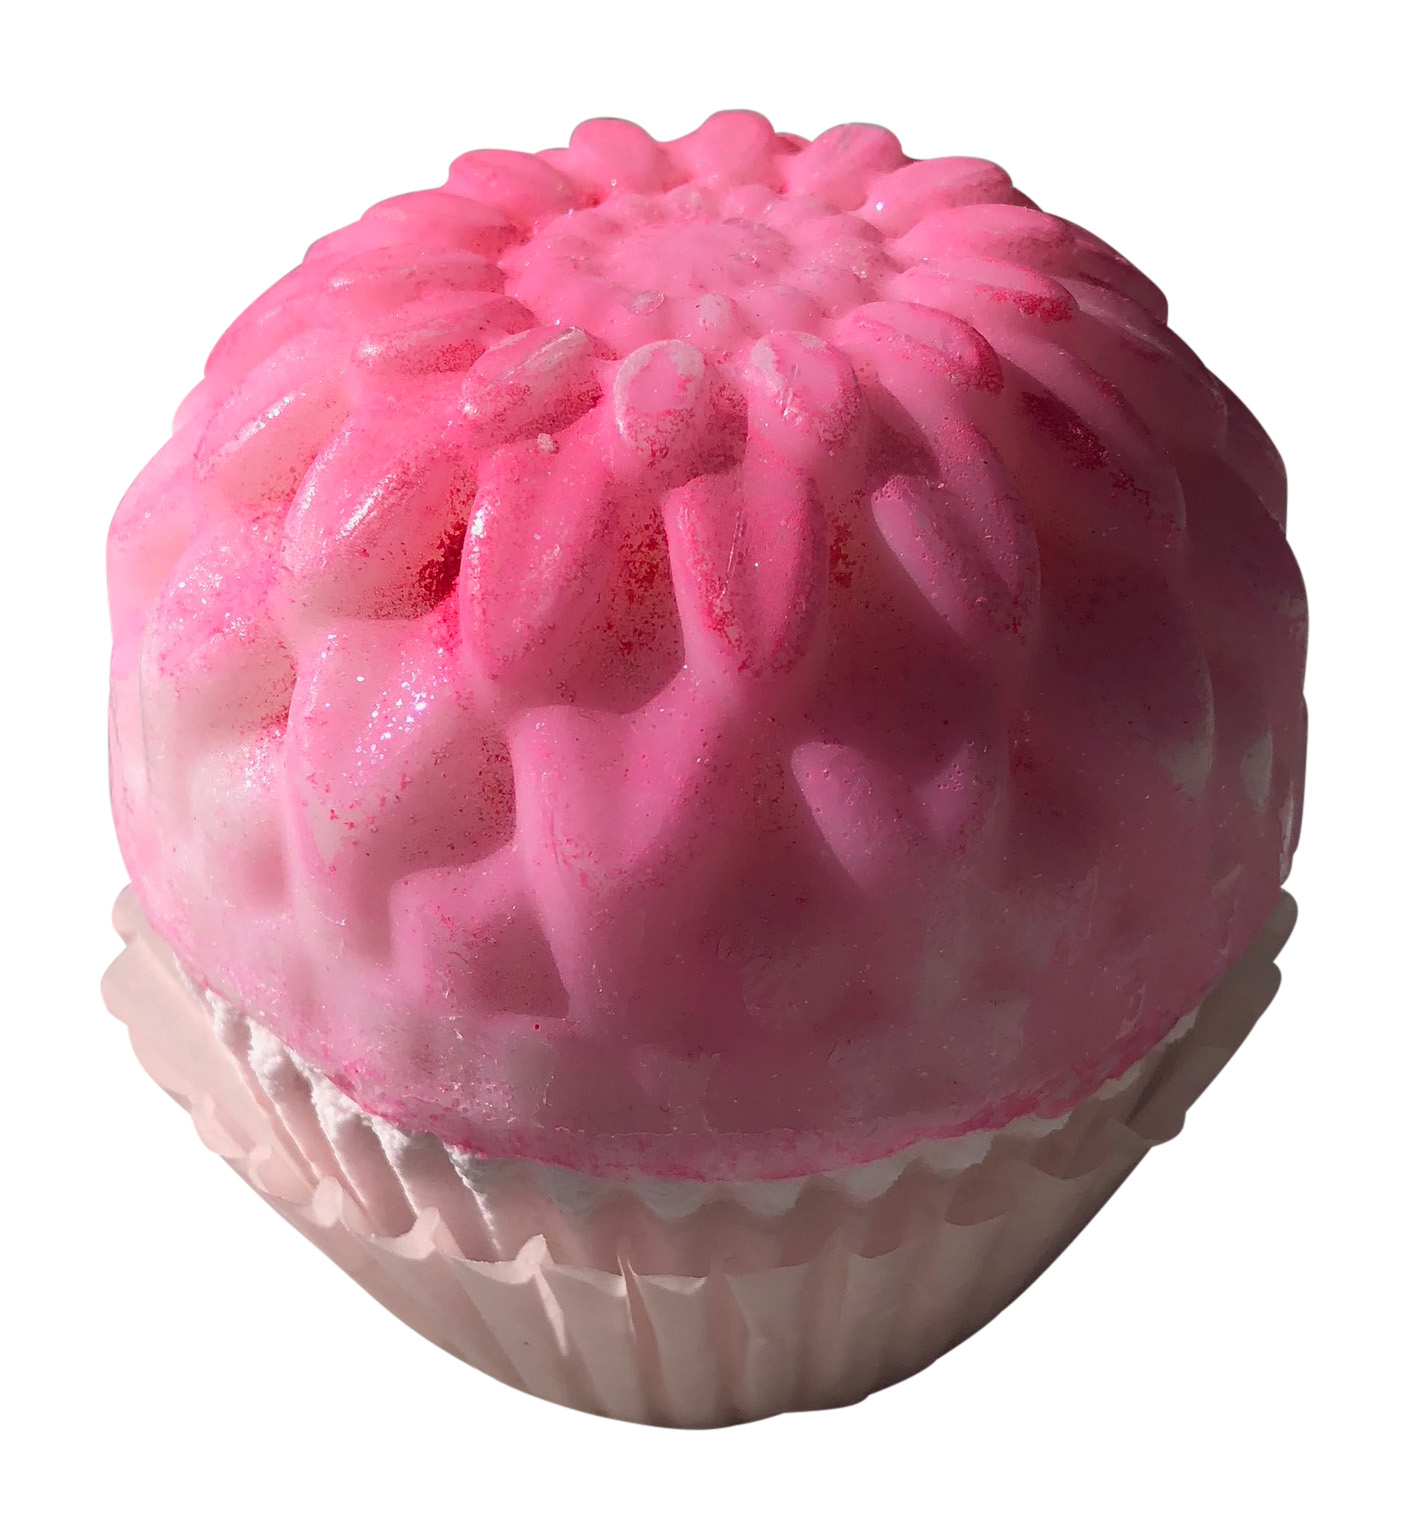 Birthday Cupcake Bath Bomb and Soap Bar with Surprise Ring Inside, Size 6